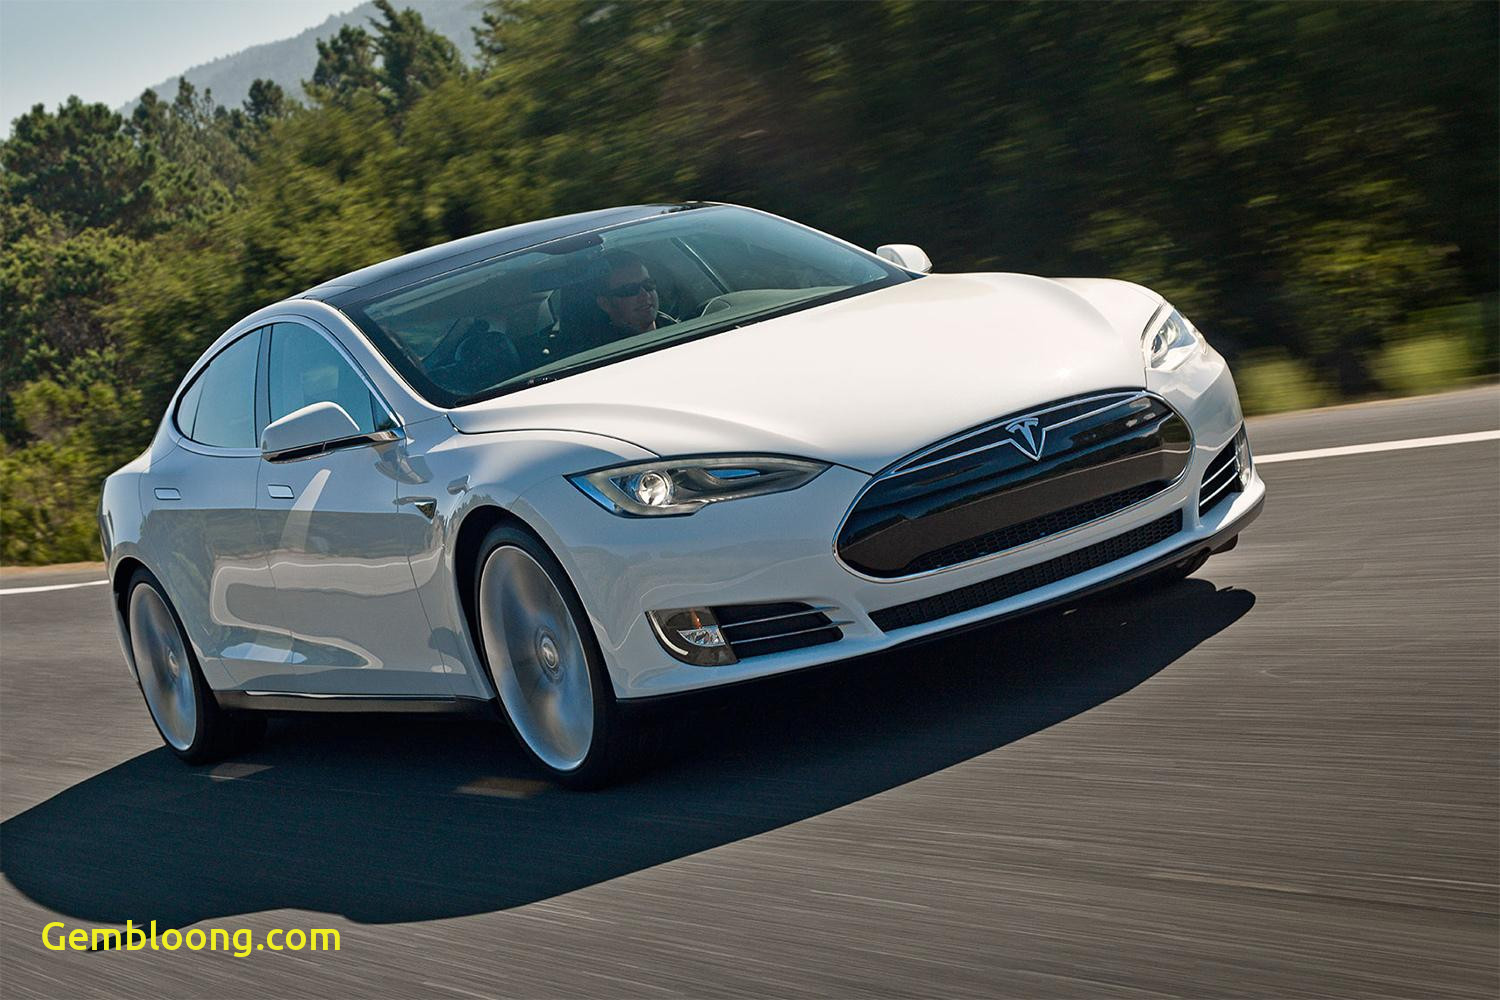 Which Tesla Model is the Fastest New the Tesla Model S is now the Fastest Car In the World